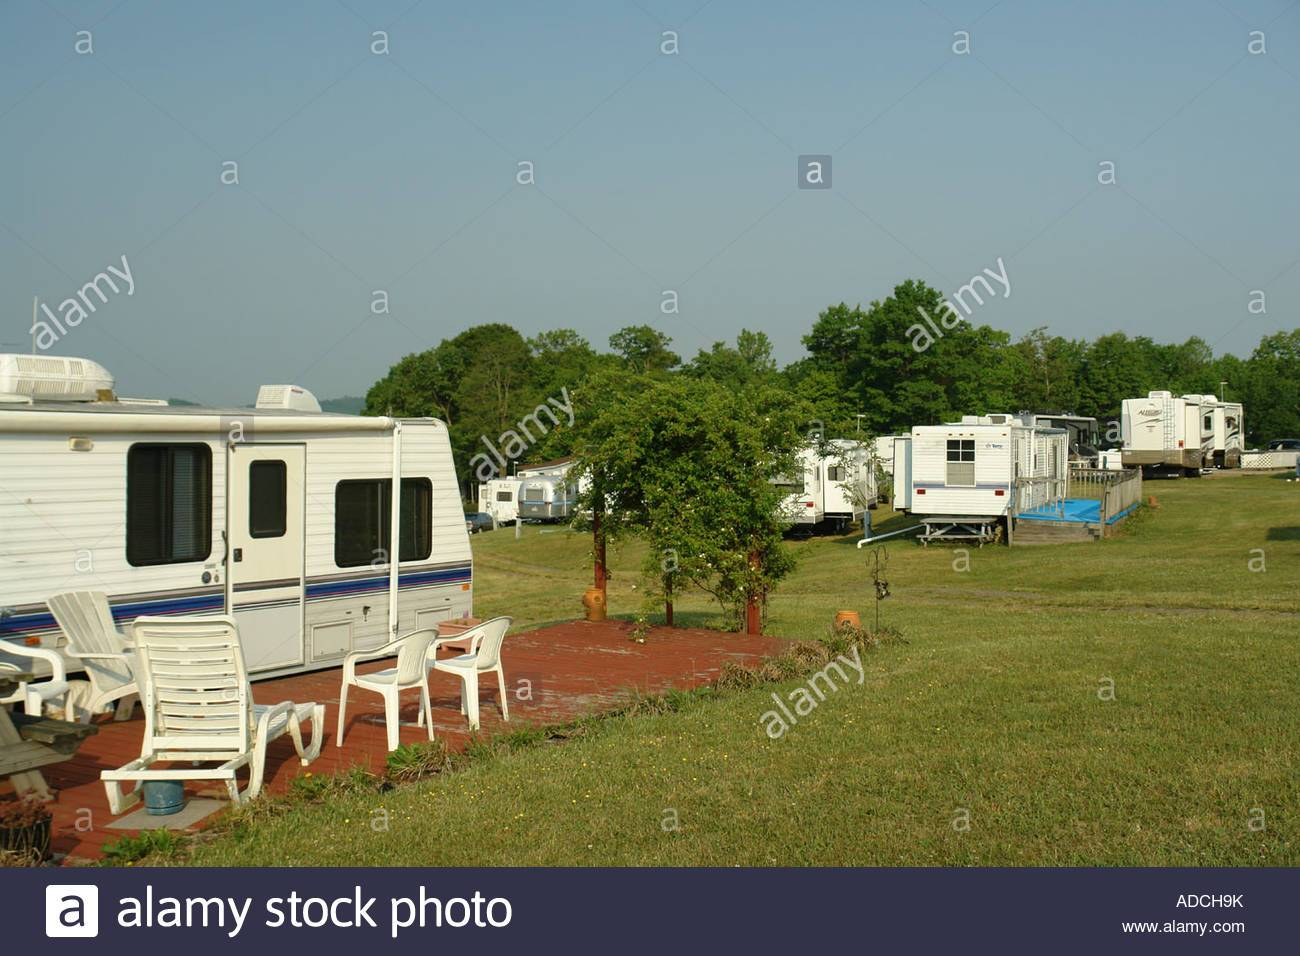 Modern Camping Facilities at Utt's Campground